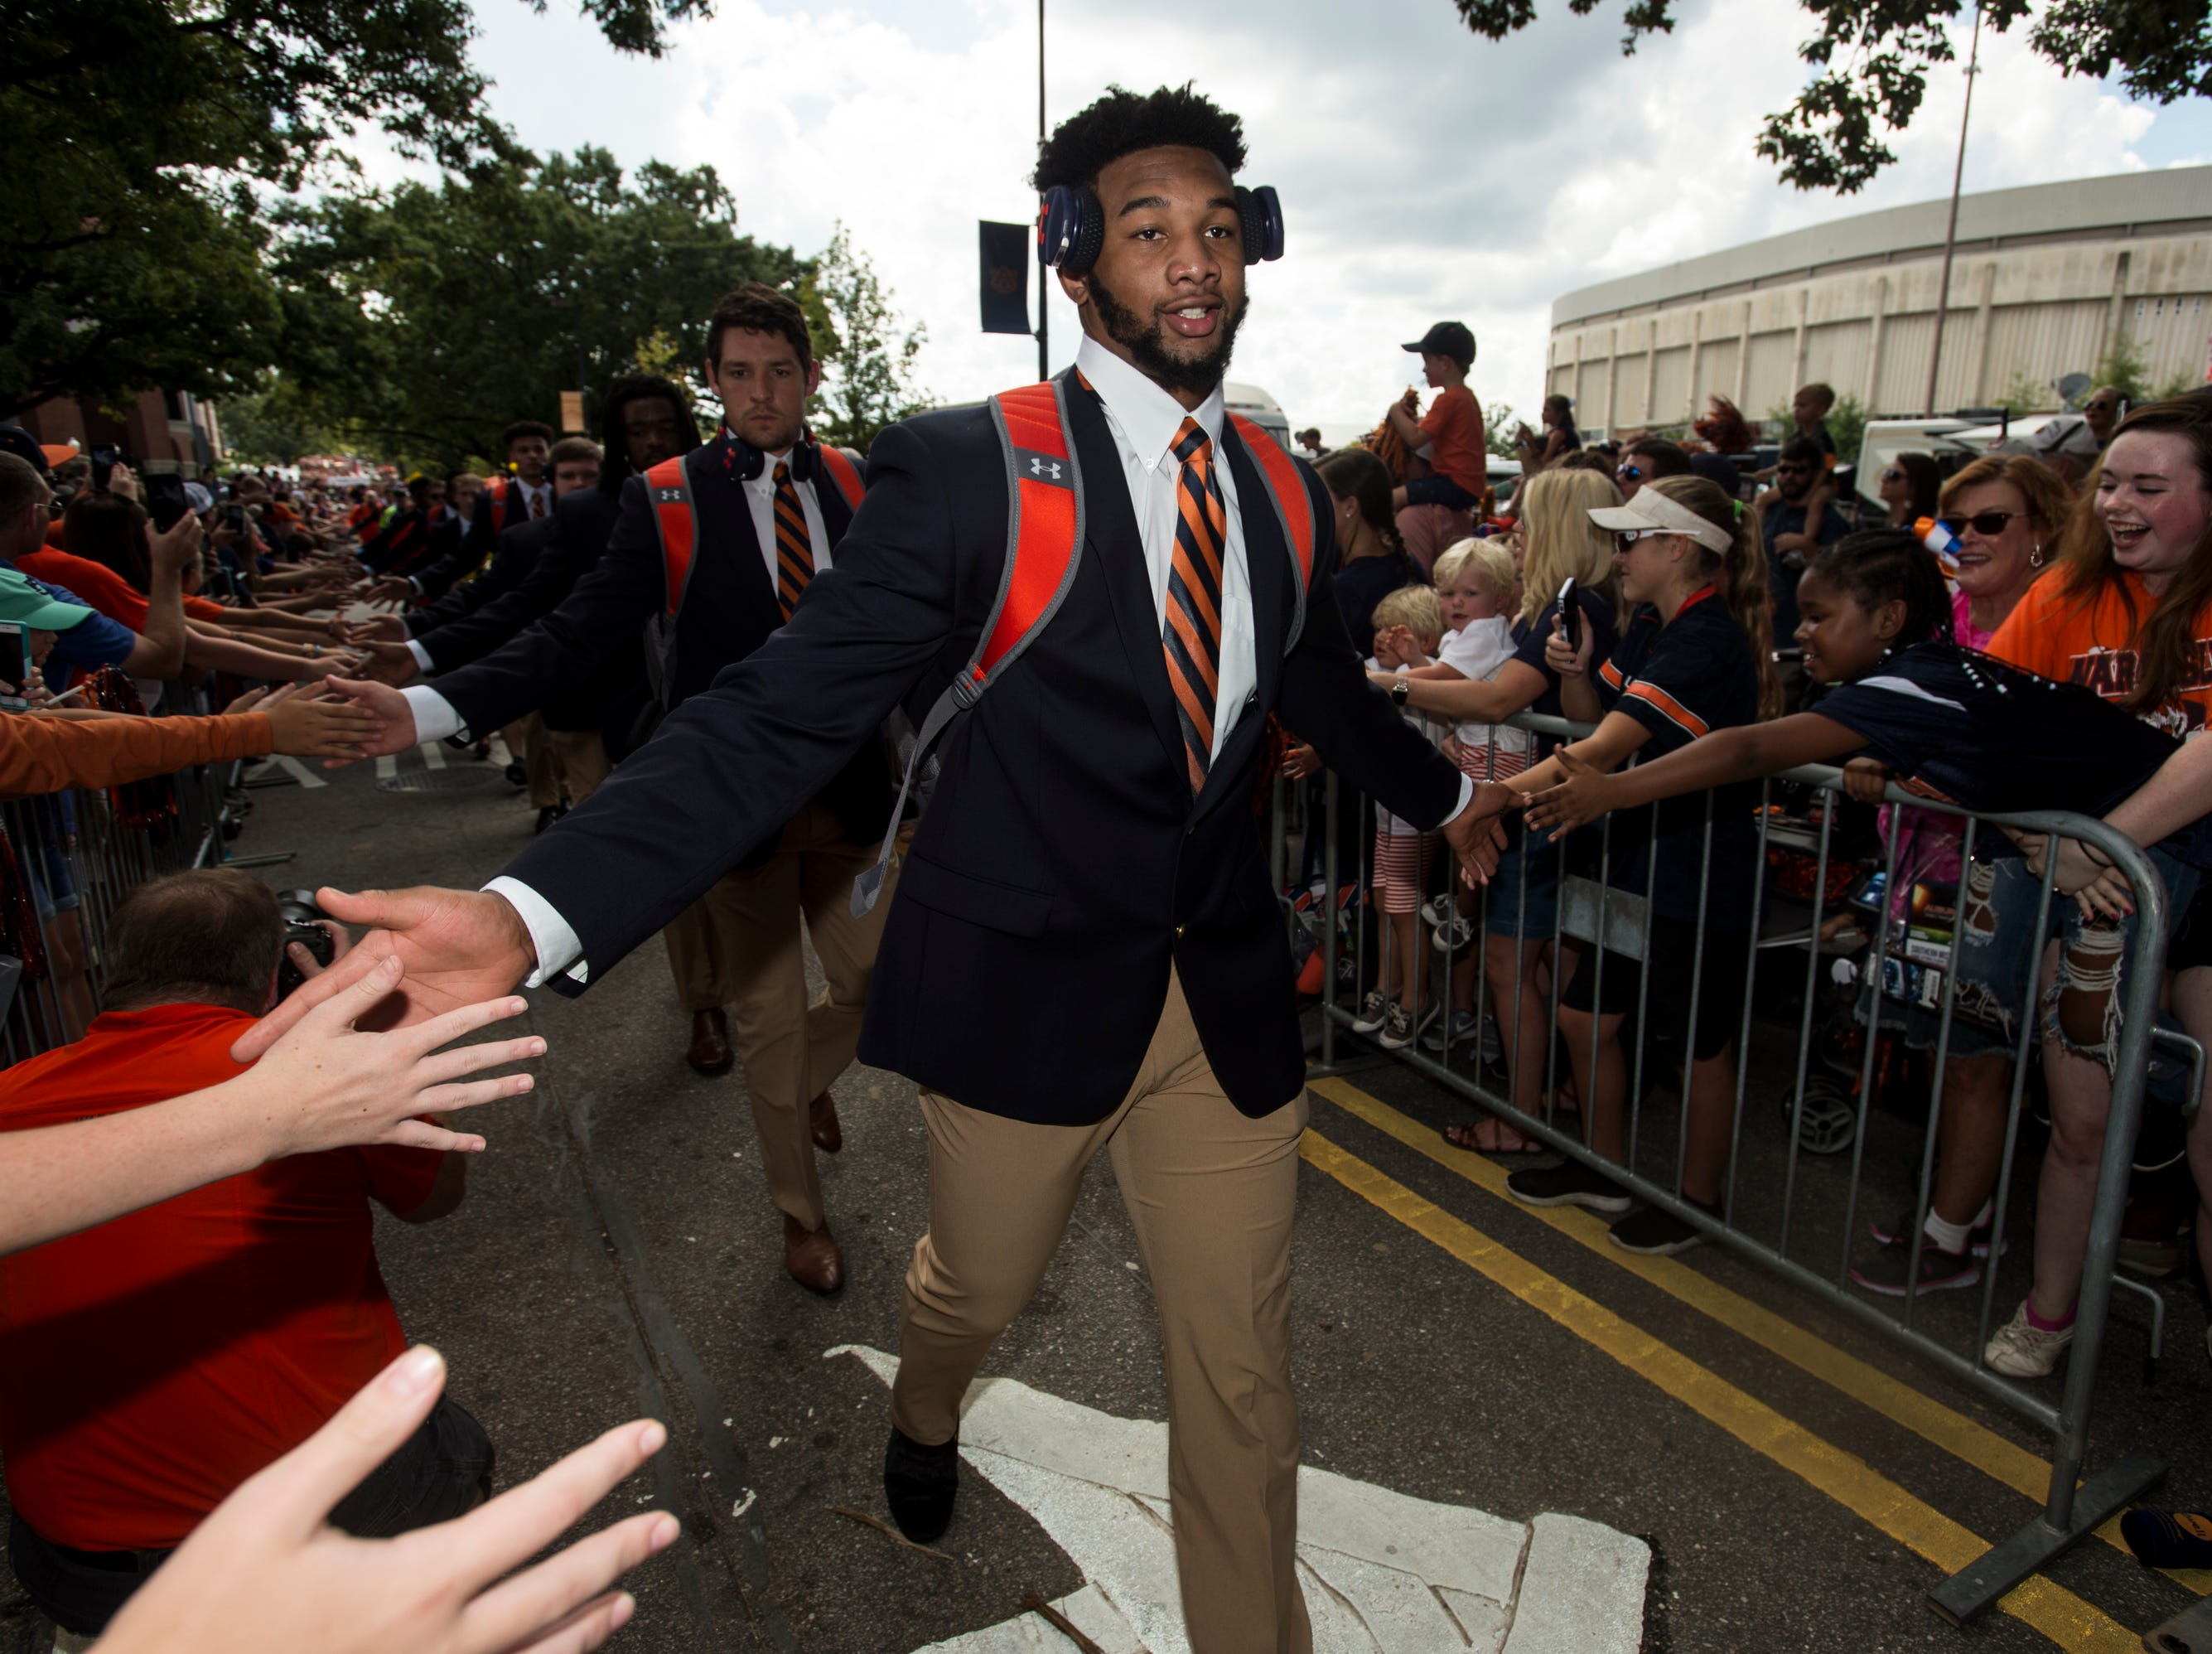 Auburn players high five fans during the Tiger Walk outside Jordan-Hare Stadium in Auburn, Ala., on Saturday, Sept. 29, 2018.